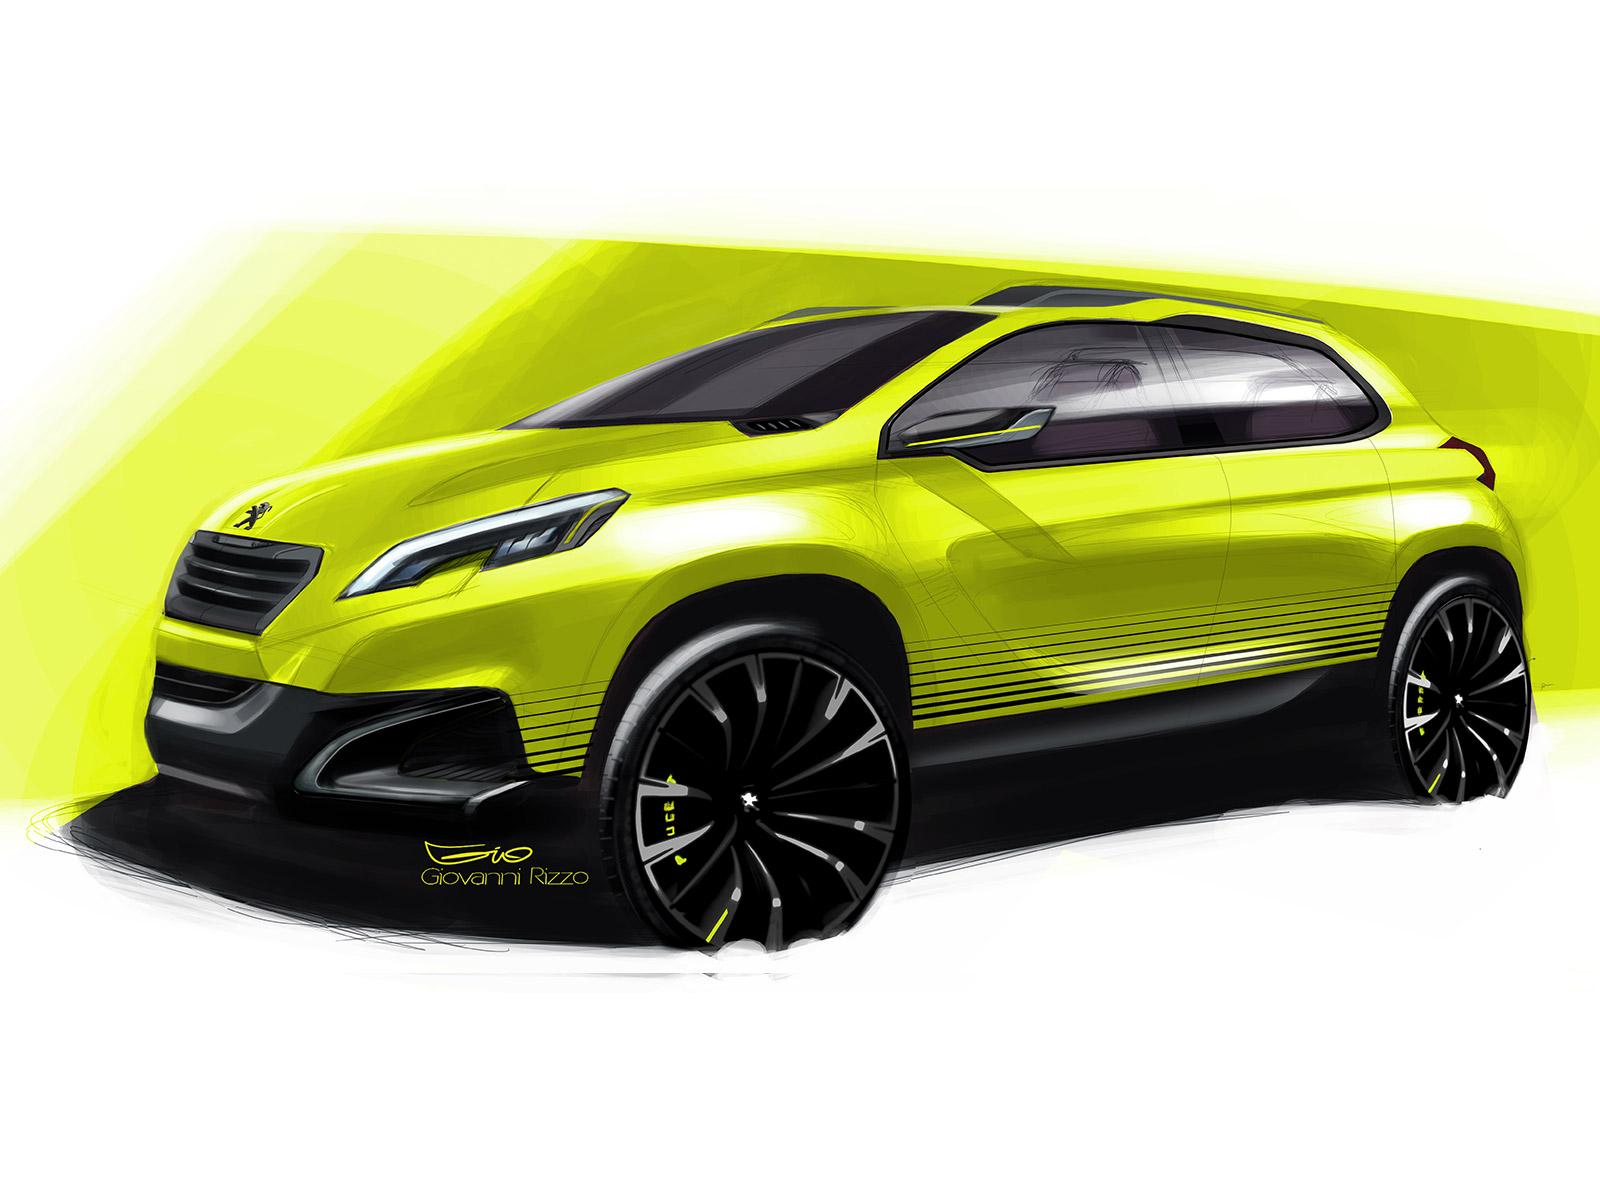 Peugeot 2008 Concept - Design Sketch - Car Body Design